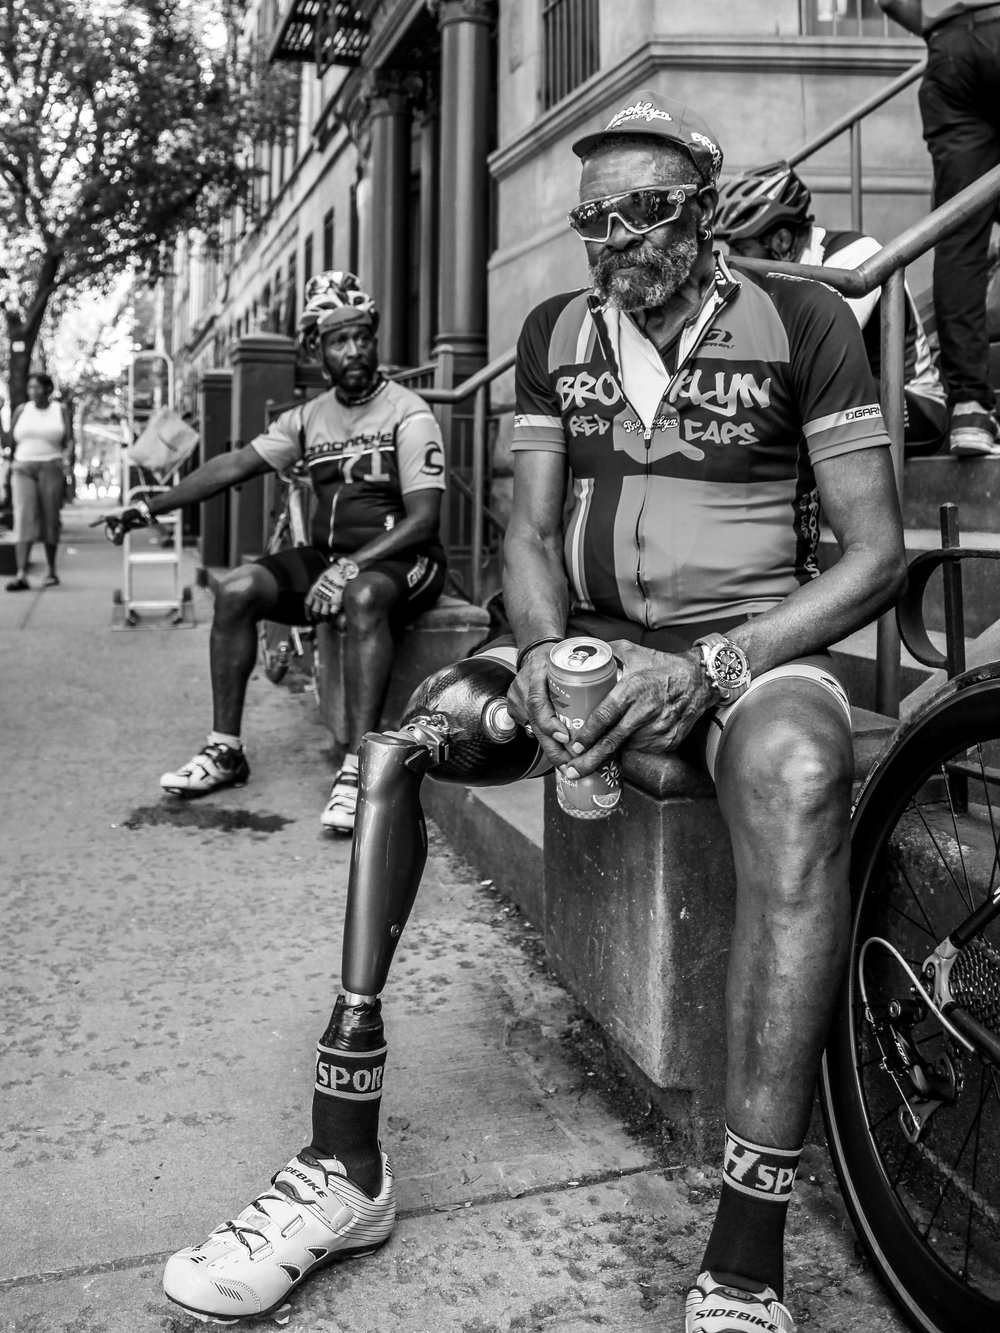 Once a cyclist, always a cyclist. This spectator came out with his cycling friends to watch the races at a local criterium event in Harlem, New York City.